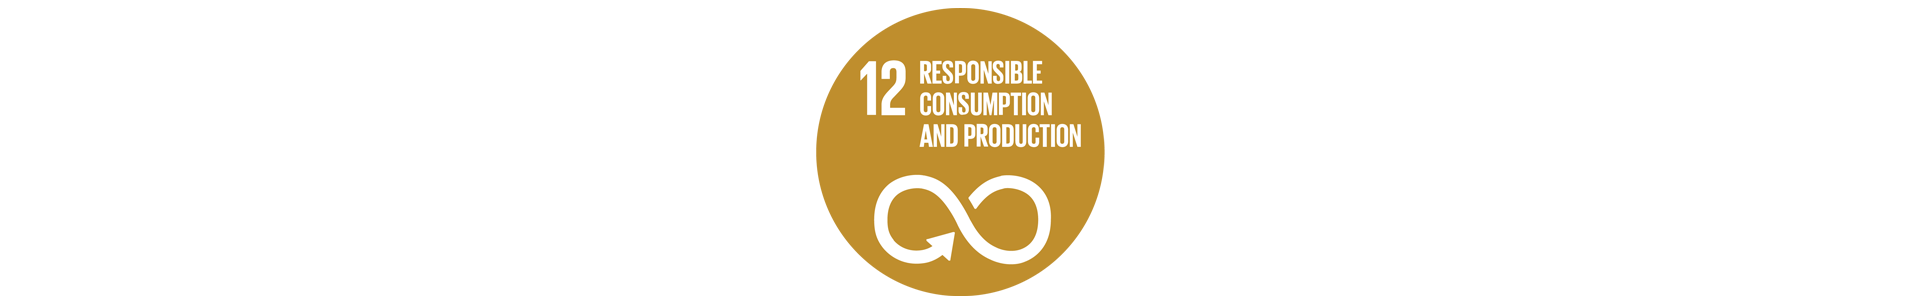 United Nation Goal 12: Responsible consumption and production